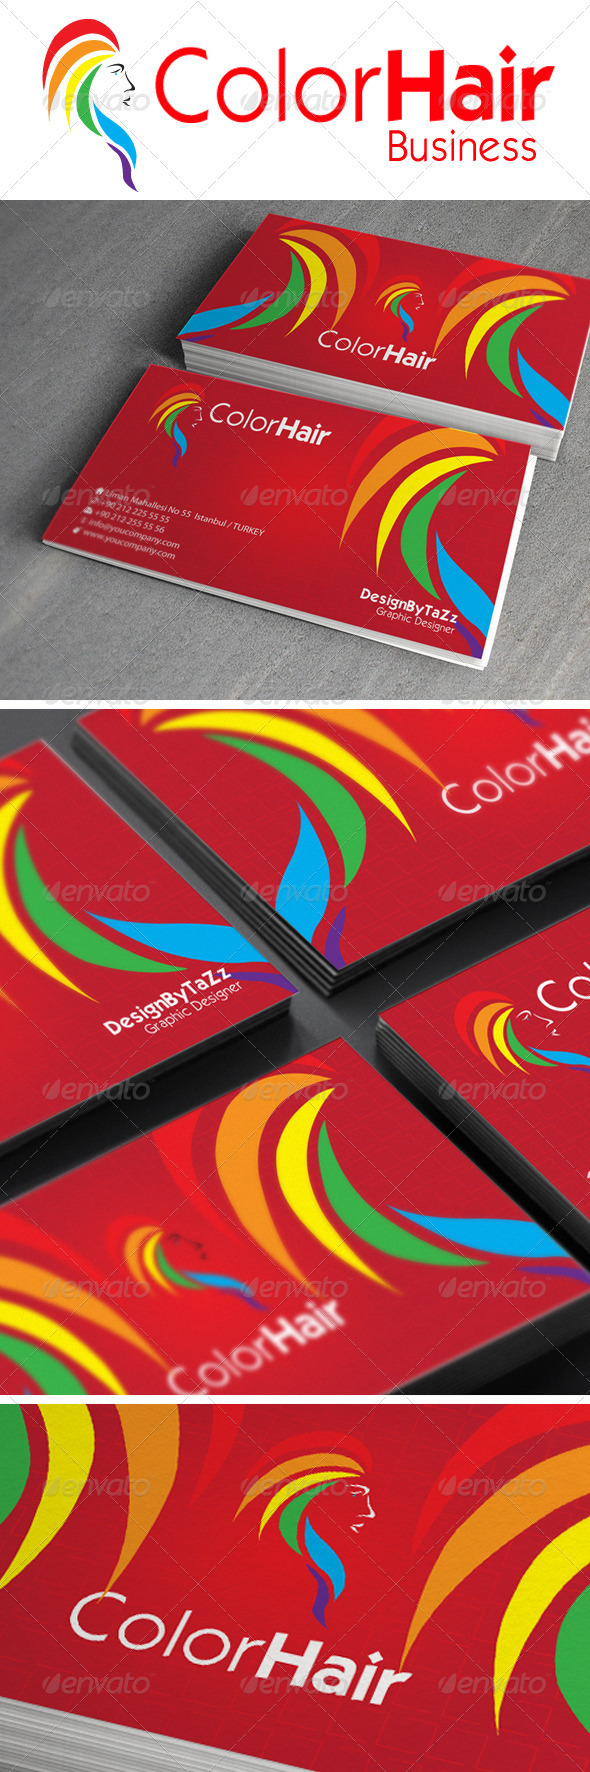 Color Hair Business Card - Creative Business Cards